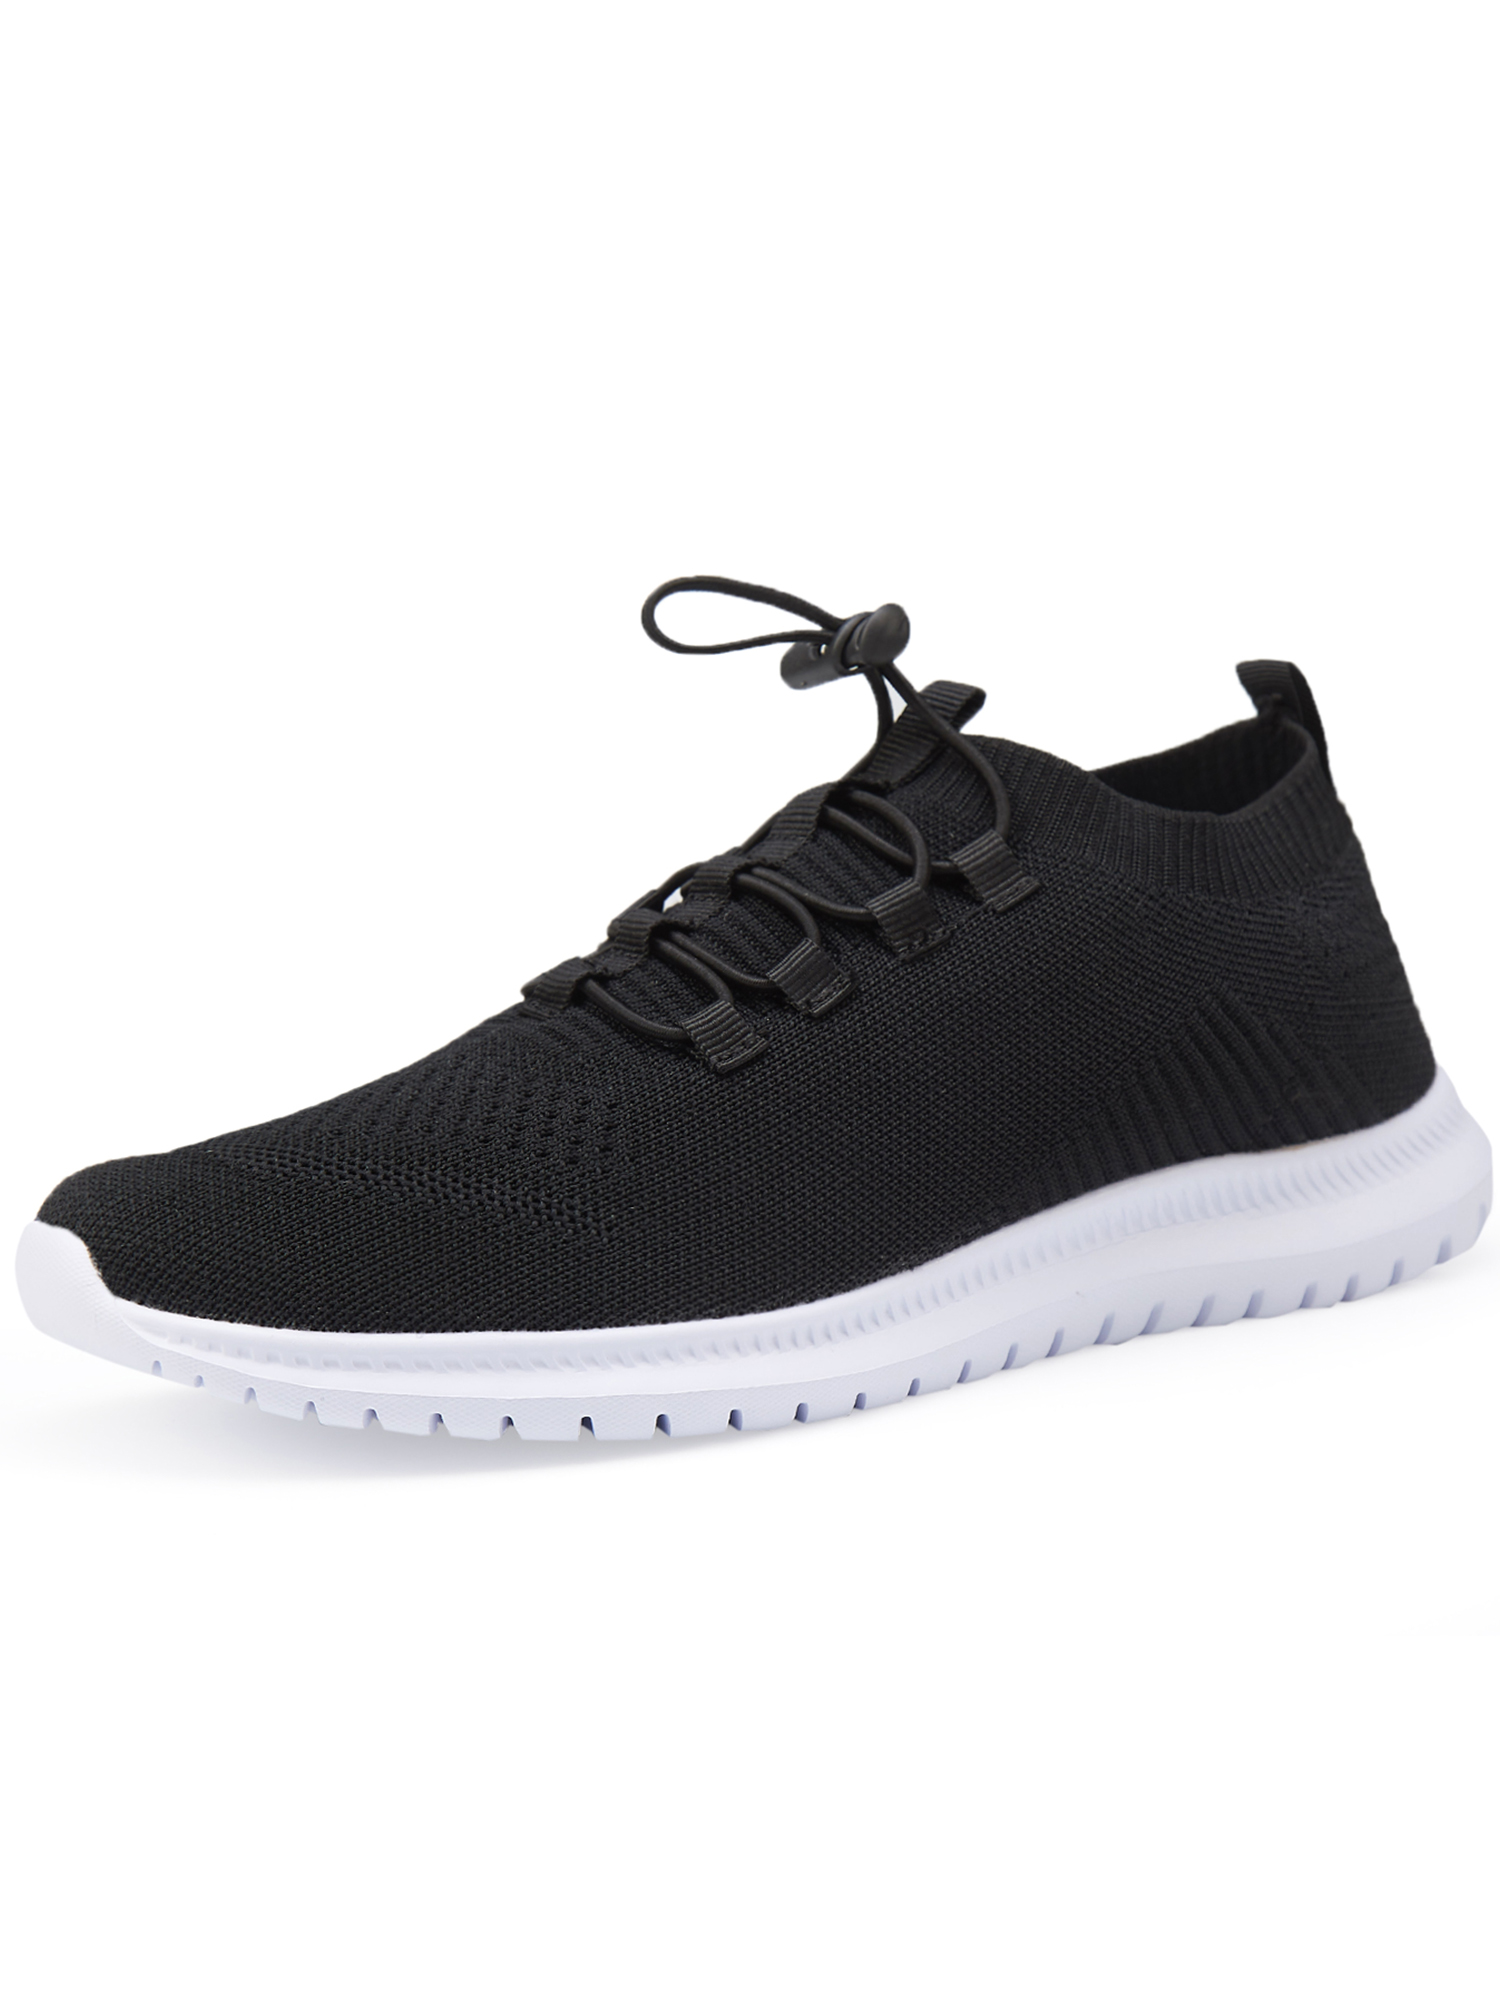 New Year 2019 Pig with Valentines Day Womens Jogger Lightweight Running Sneakers Gym Outdoor Running Shoes